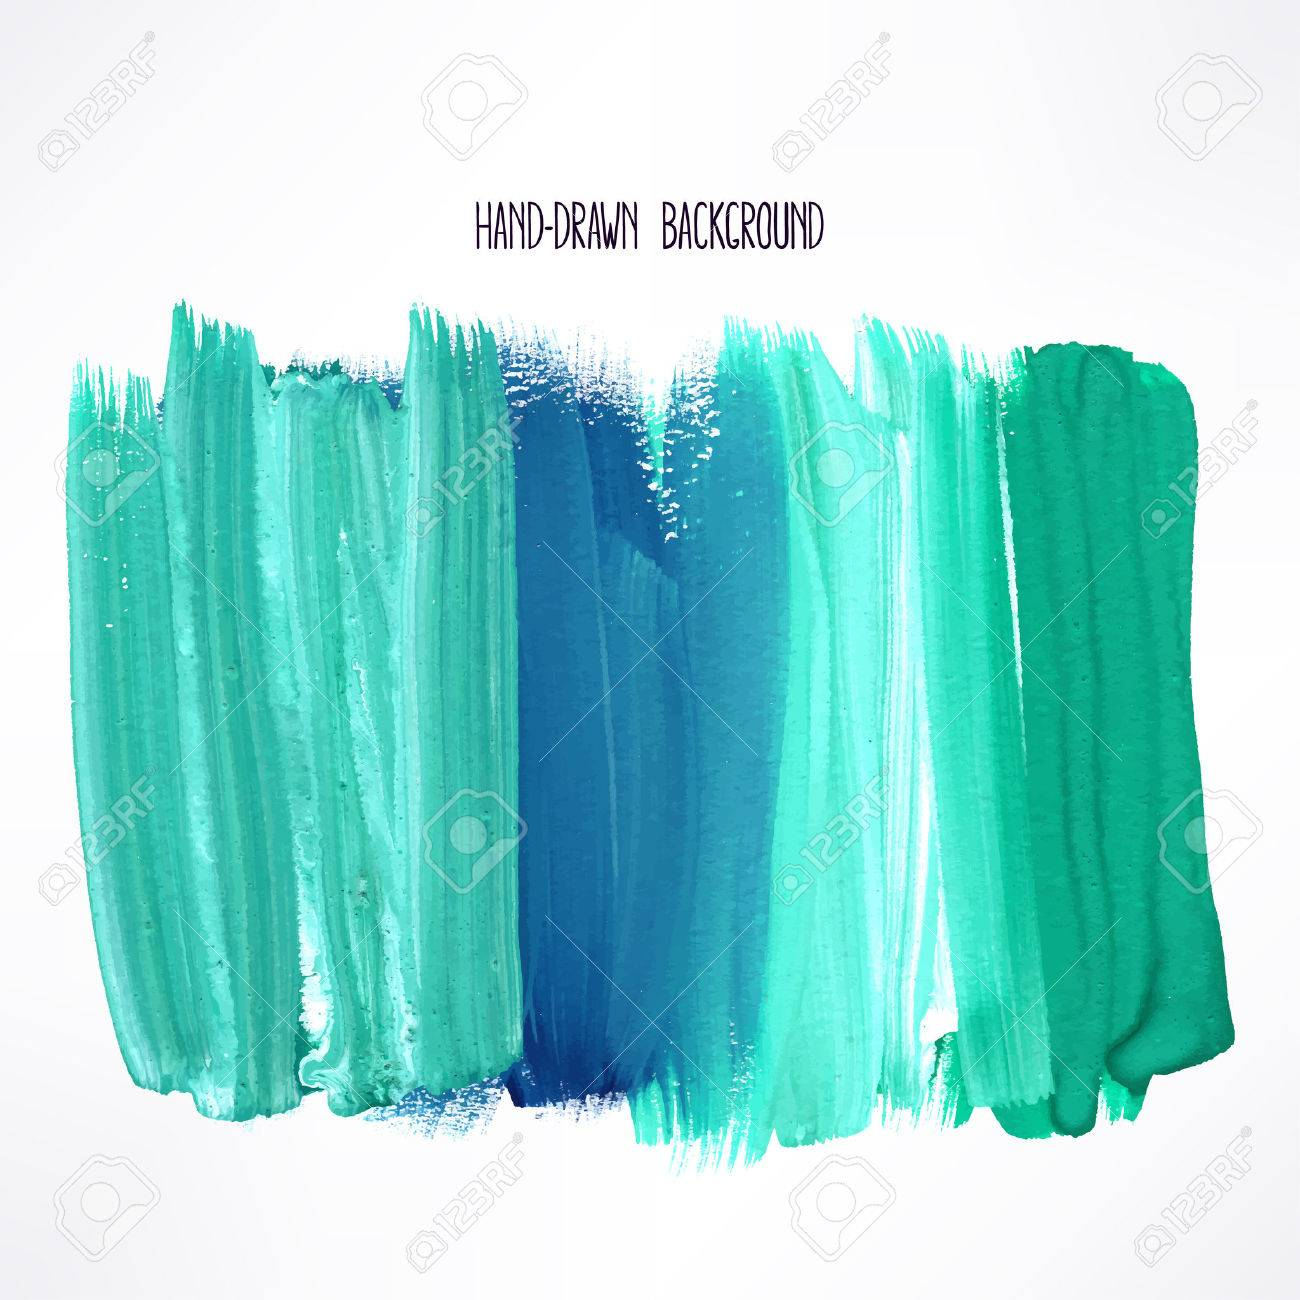 background with blue and green strokes. hand-drawn illustration - 40277904